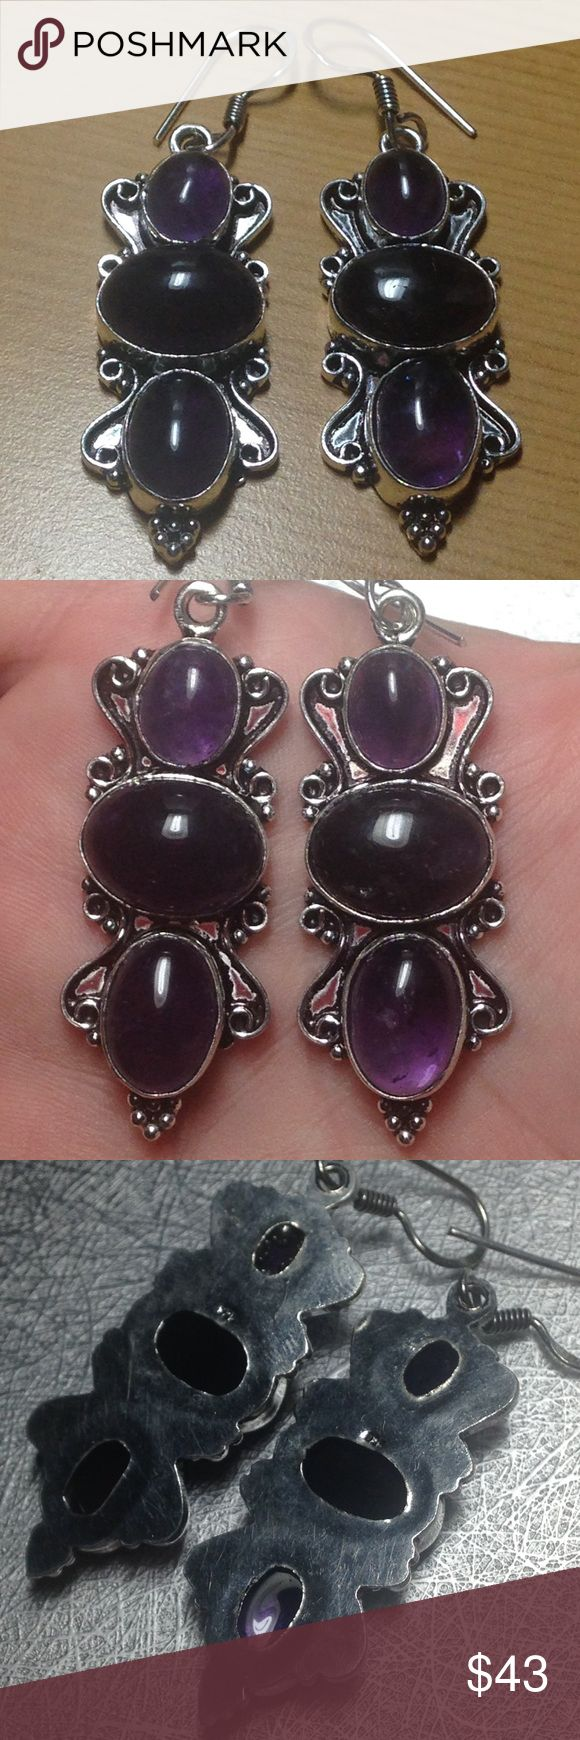 🔥New! Genuine Deep Amethyst .925 (stamped) + Gift 🔥New! just in ! 22+tcw Genuine deep Royal Purple. Brazilian Amethyst Trilogy Gemsone .925 Ornate Hook Earrings (Stamped hooks & stamped silver skilled Silversmith Handcrafted beauties) Features four lovely scrolls on silver plates w/ 5 bottom Silver beads . Total size is 45x19mm (10x9mm, 12x15mm, 13.5x10mm) - ✔️🎁Earns a free new mystery thank you gift ✔️Top rated trusted seller ✔️16 + yrs selling online ✔️Ships quickly✔️comes in a new…